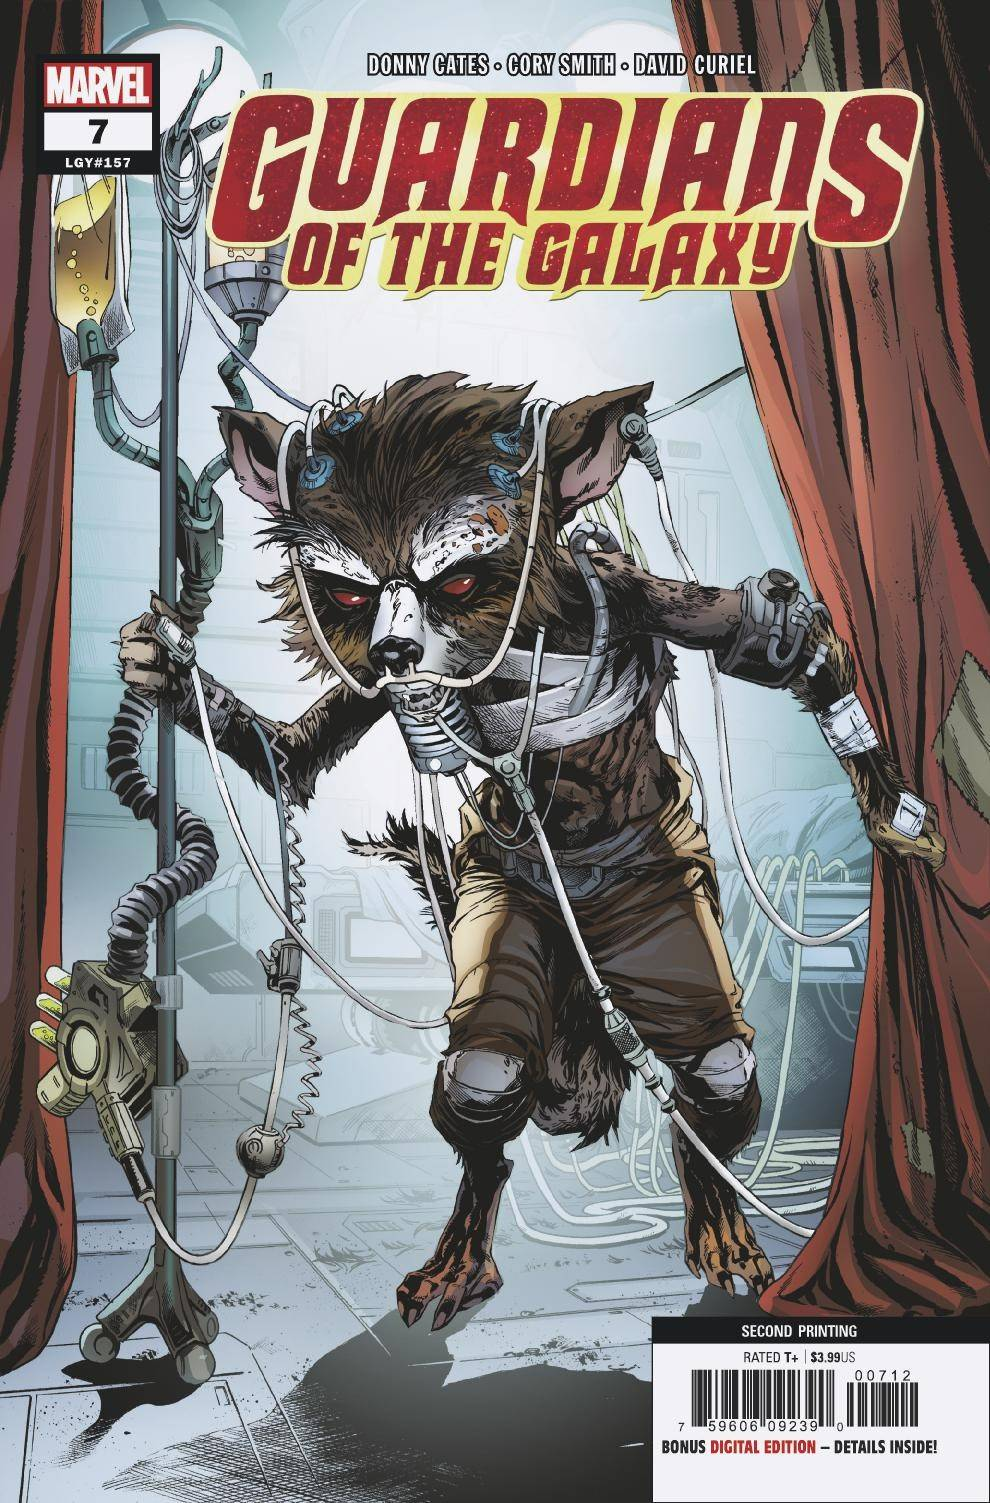 GUARDIANS OF THE GALAXY #7 2ND PTG SMITH VAR.jpg